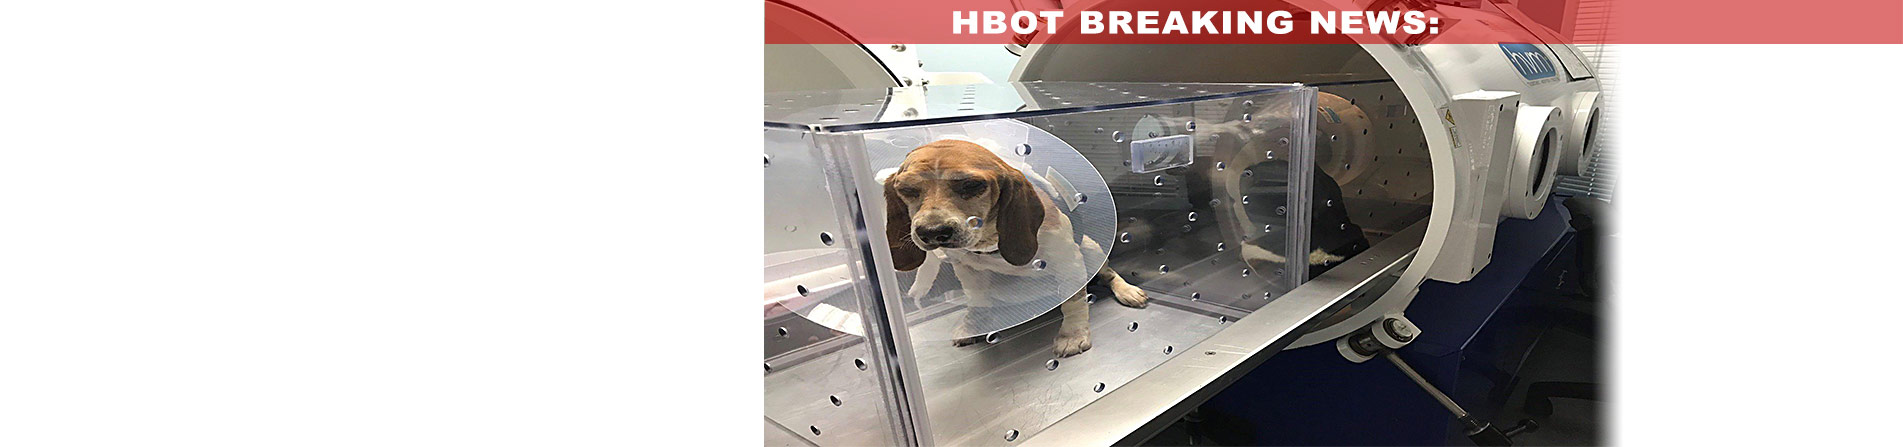 BREAKING_NEWS-CARE_Beagles_Fire